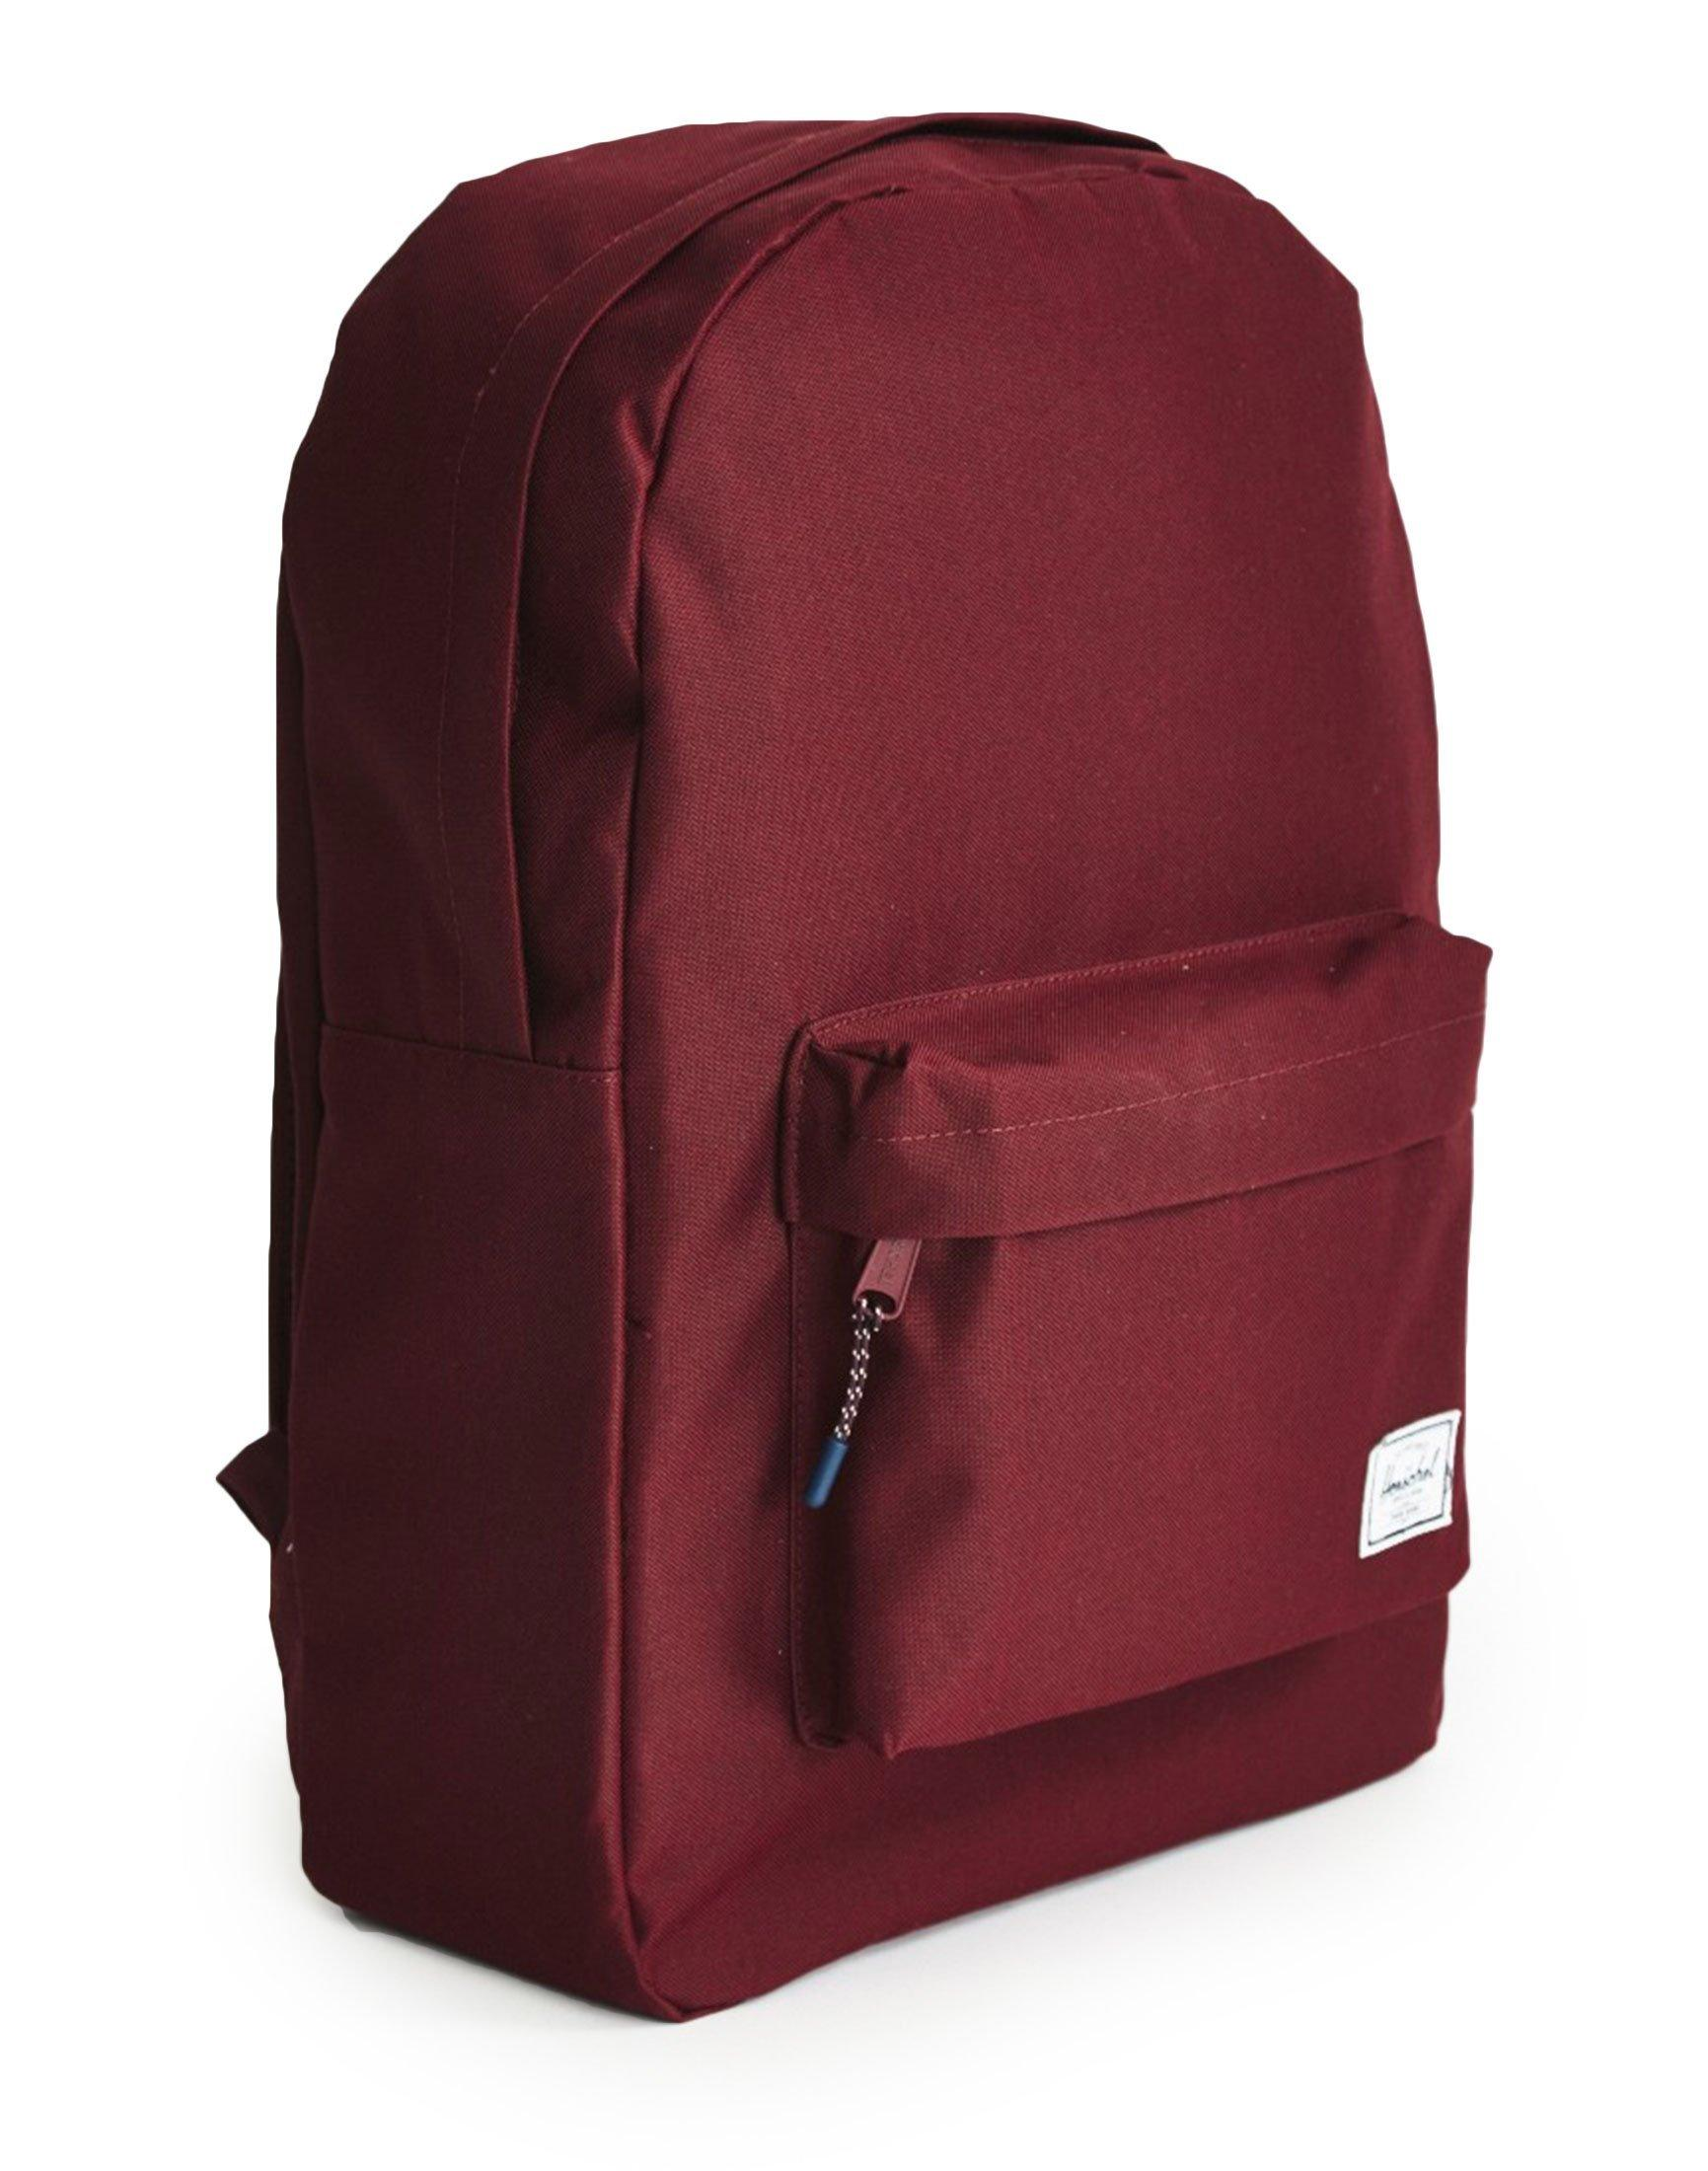 c8acced9b17a Lyst - Herschel Supply Co. Classic Backpack Burgundy in Red for Men